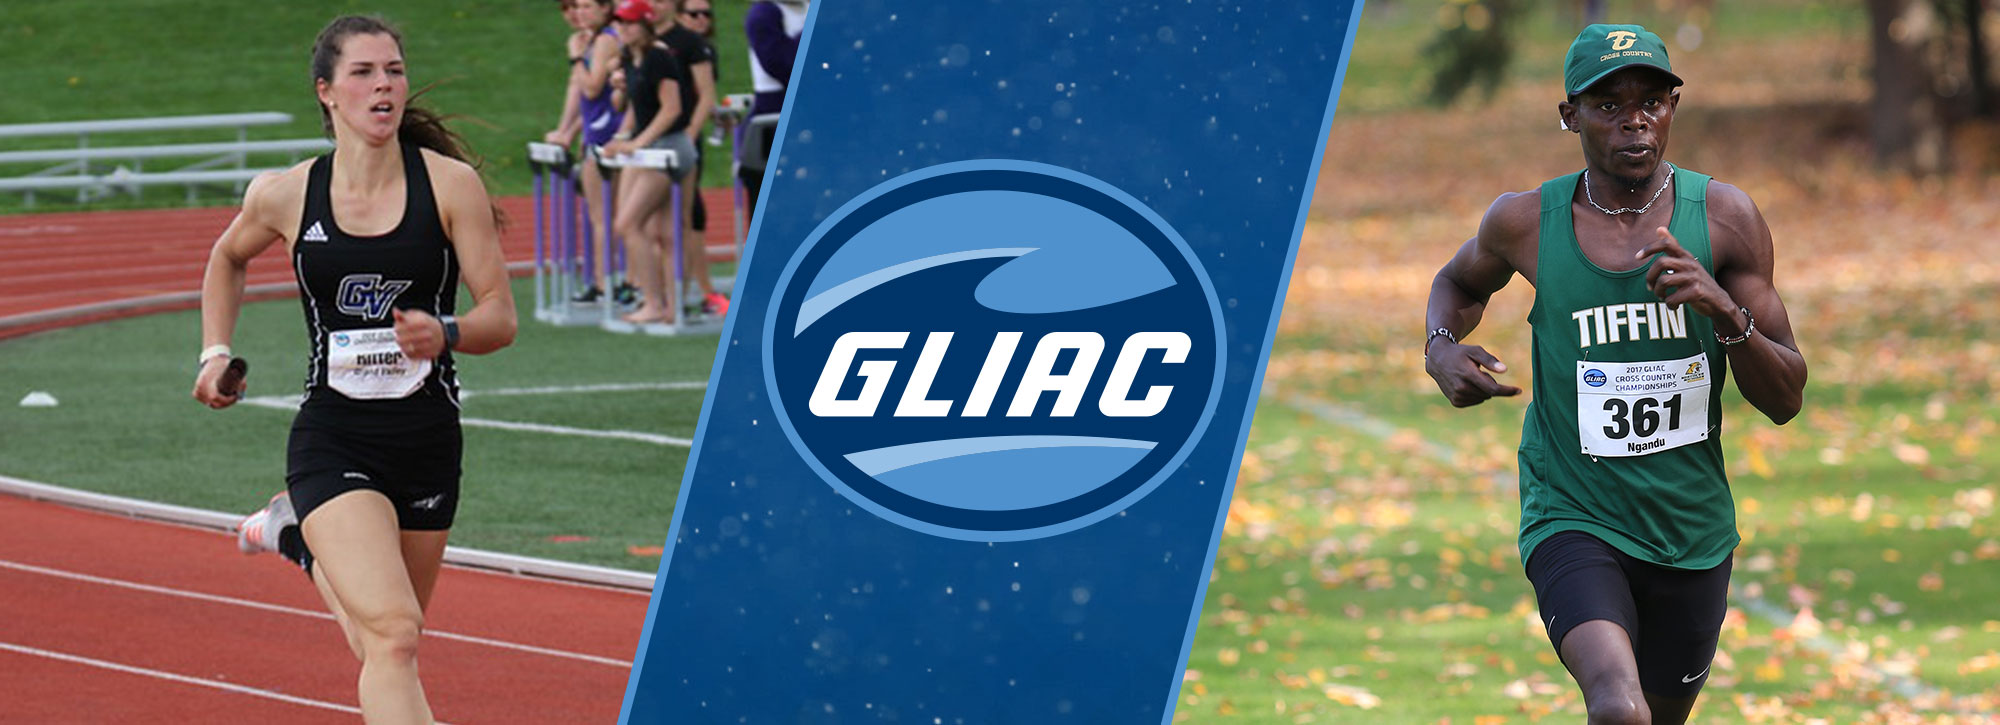 Grand Valley State's Ritter, Tiffin's Ngandu Named 2017-18 GLIAC Scholar-Athletes of the Year